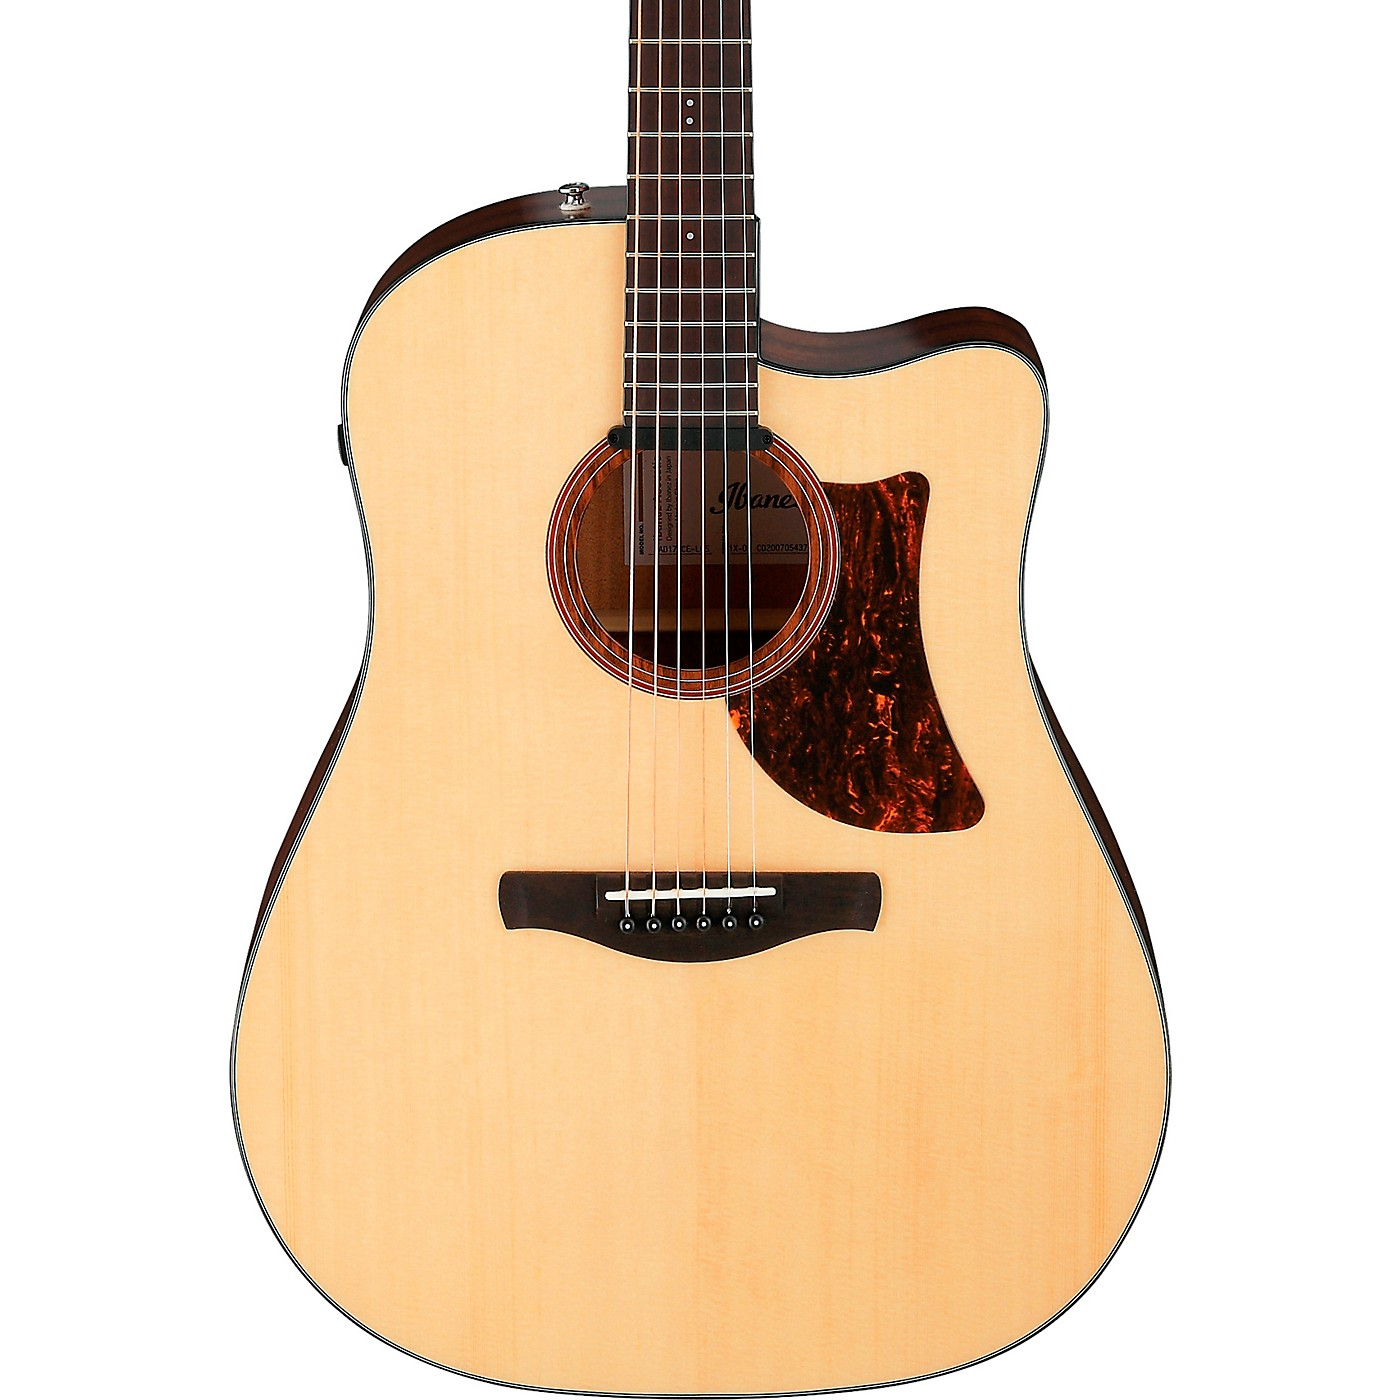 Ibanez AAD170CE Advanced Acoustic Electric Cutaway Dreadnought Guitar thumbnail